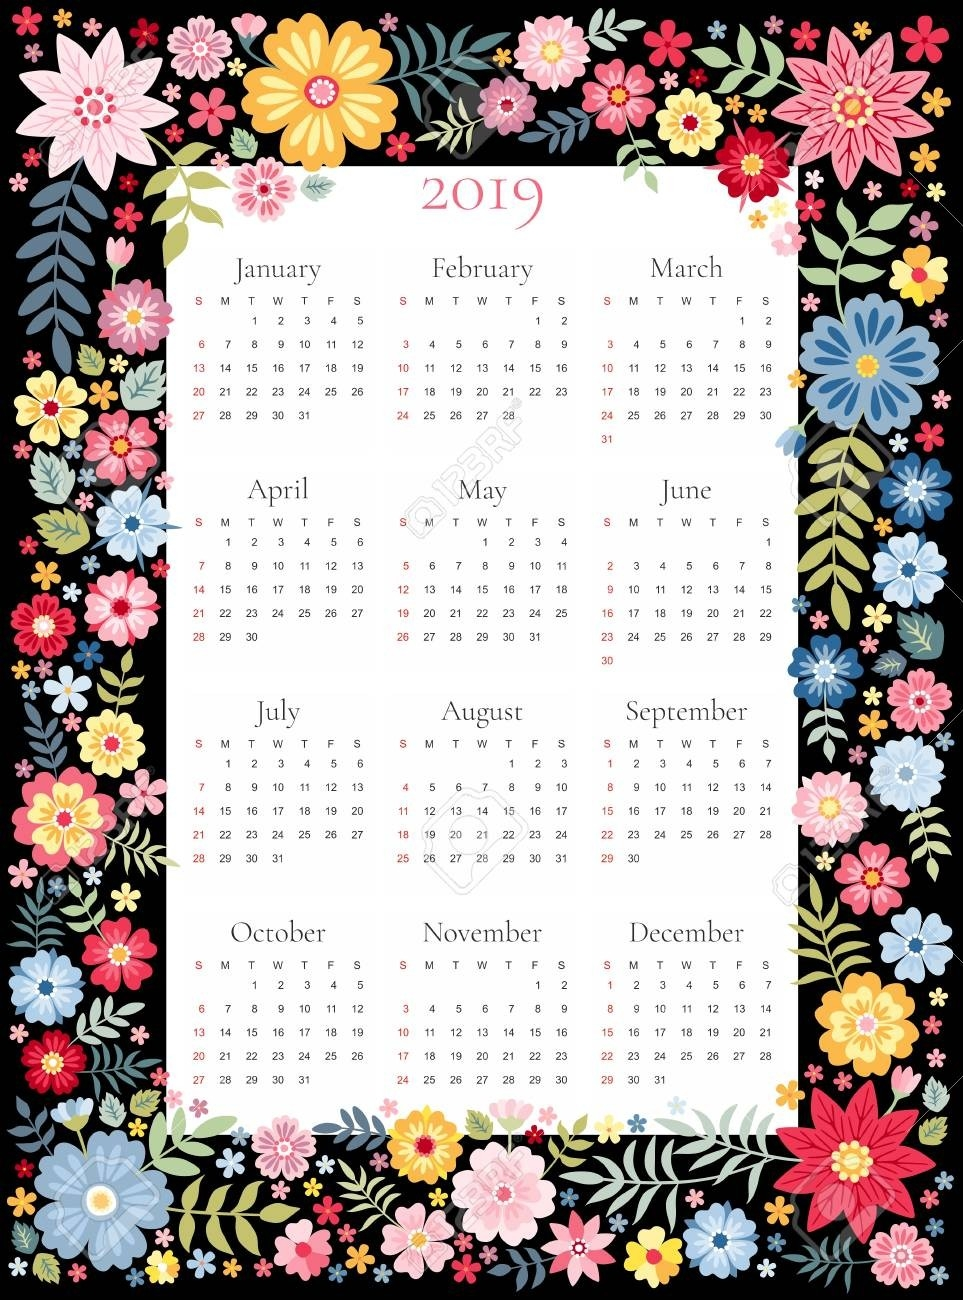 Calendar For 2019 Year. Vector Template In Floral Frame With..-Template For Calendars With Flowers